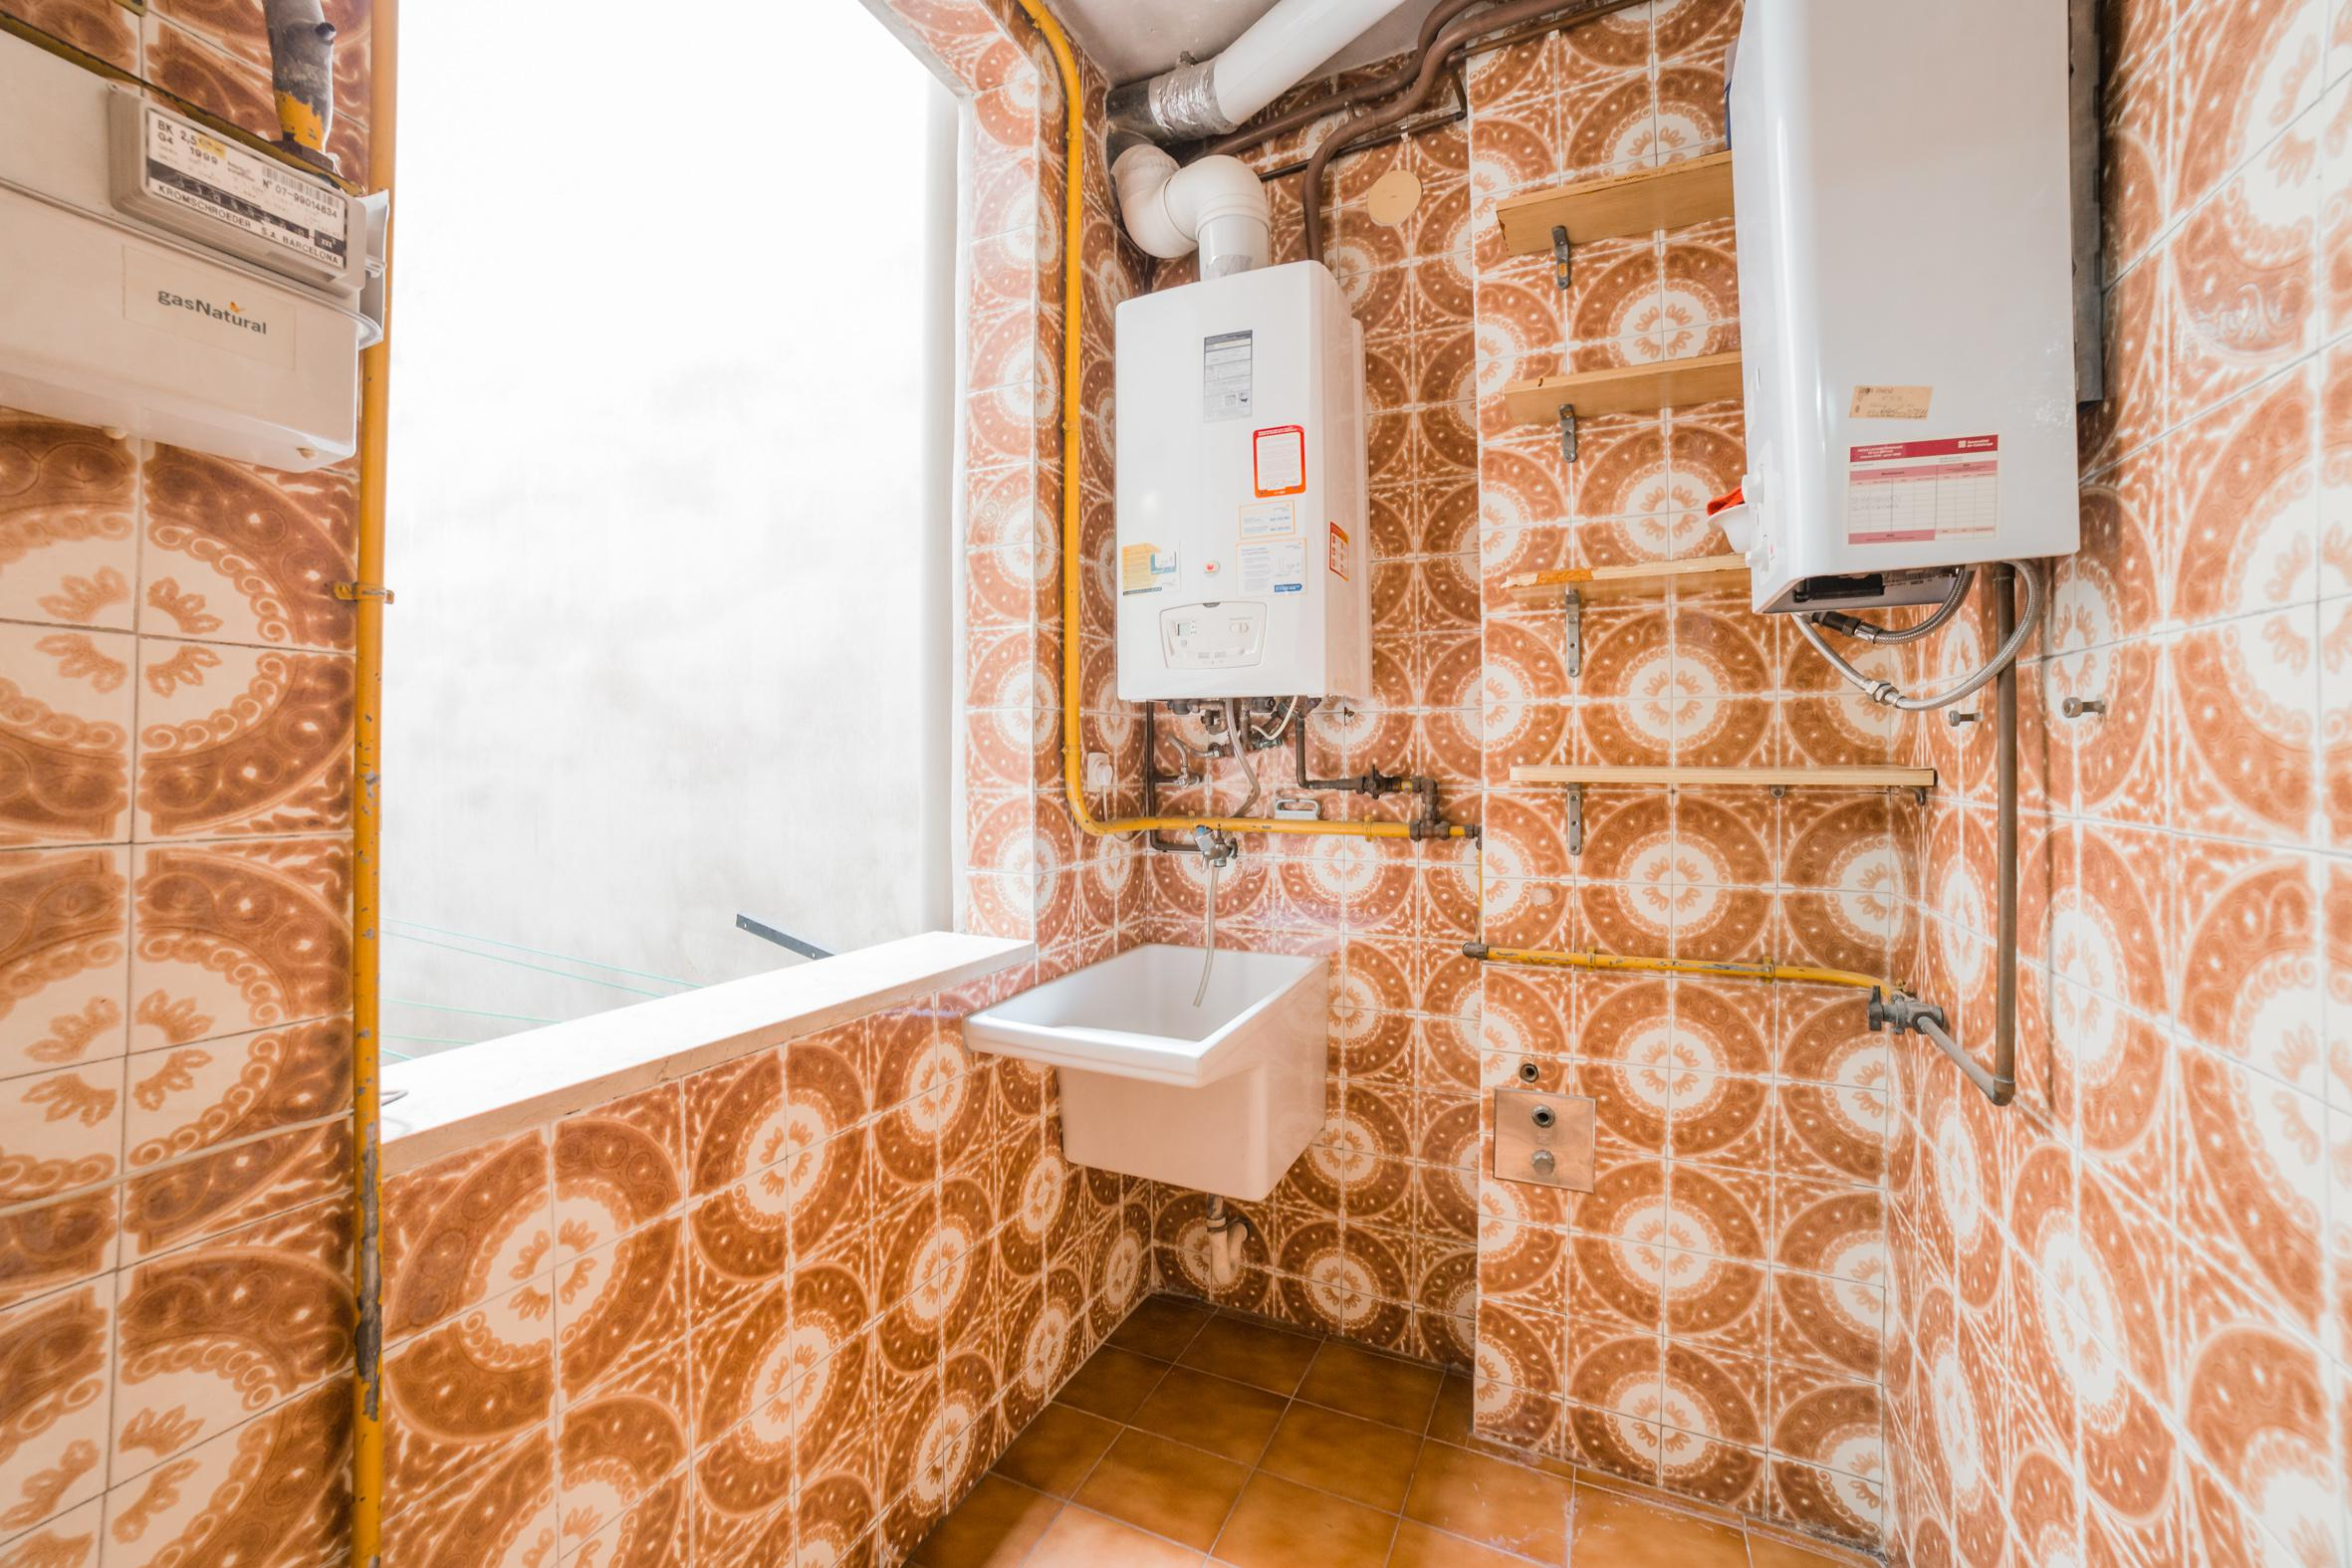 248988 Flat for sale in Les Corts, Les Corts 16